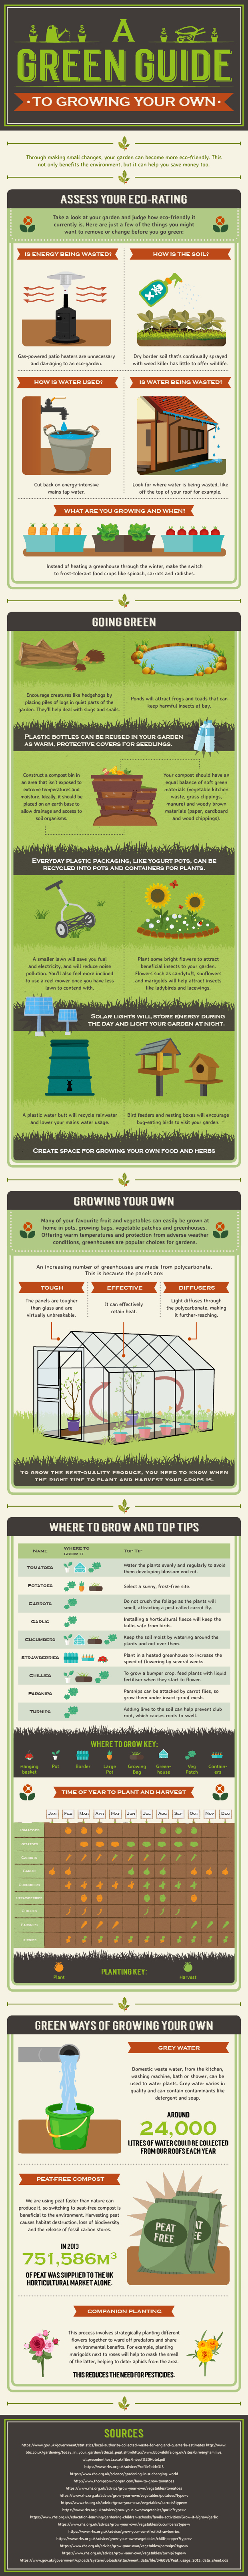 A green guide to growing